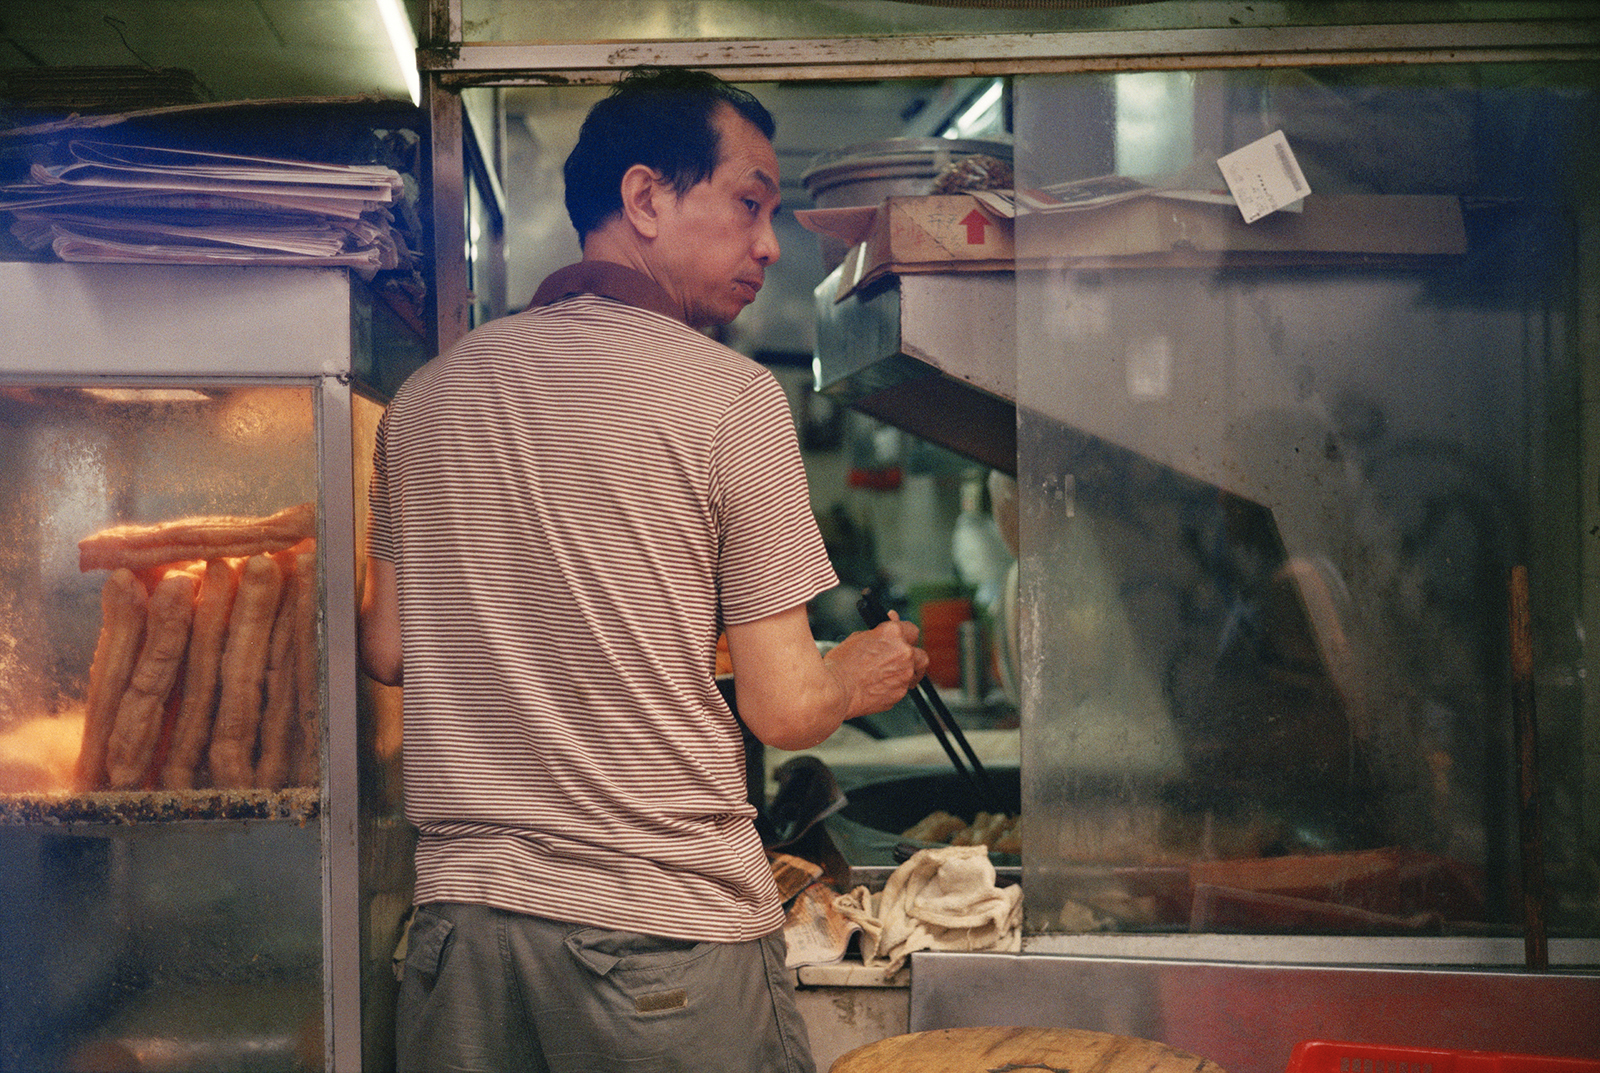 57_F16_Food Vendor, Hong Kong 2015.jpg